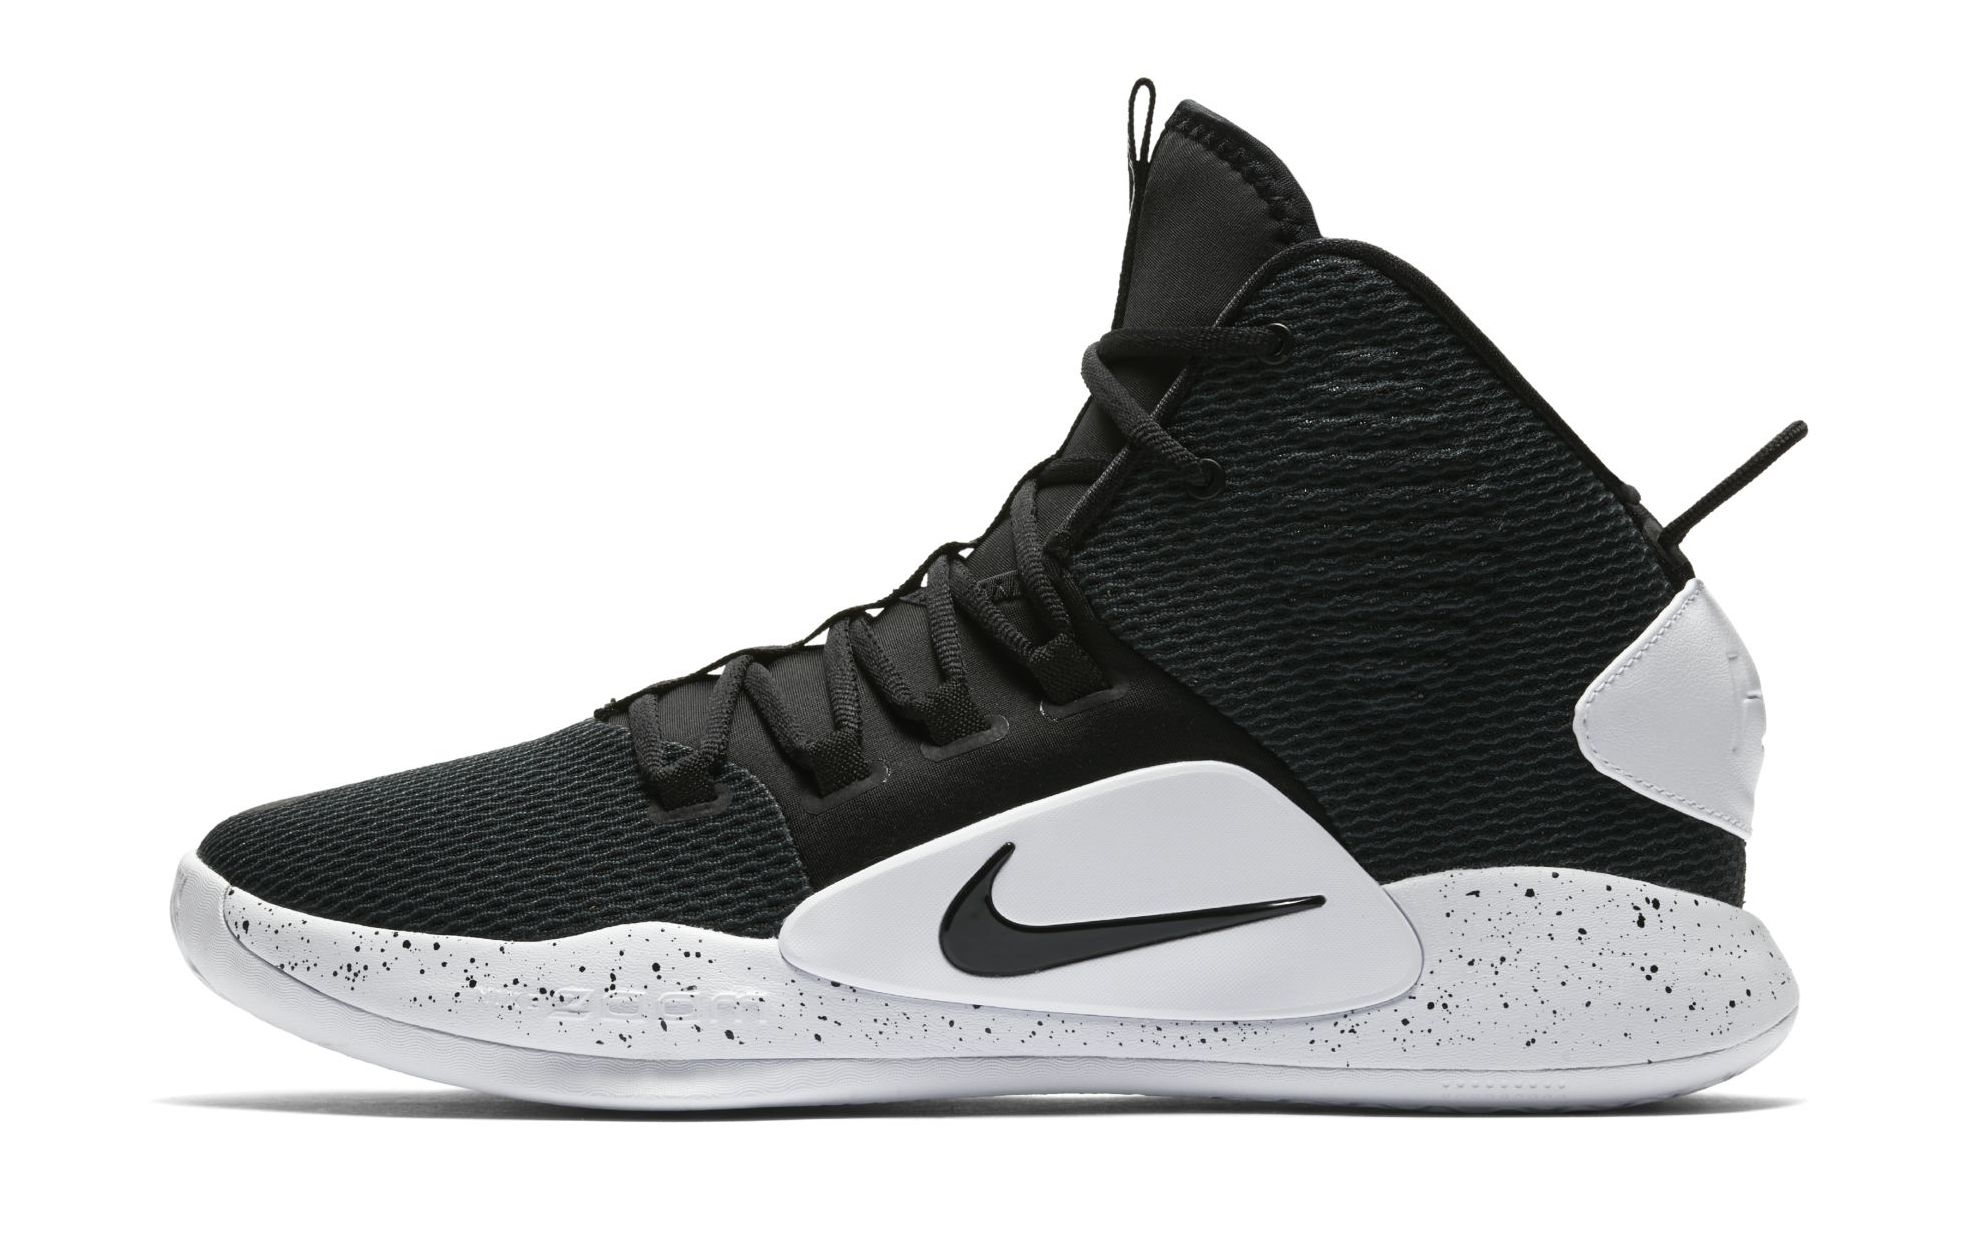 competitive price 7be85 bc2b9 The tenth iteration of the Nike Hyperdunk will be making its official  release this year, and official images of its Black White pair have now  surfaced.